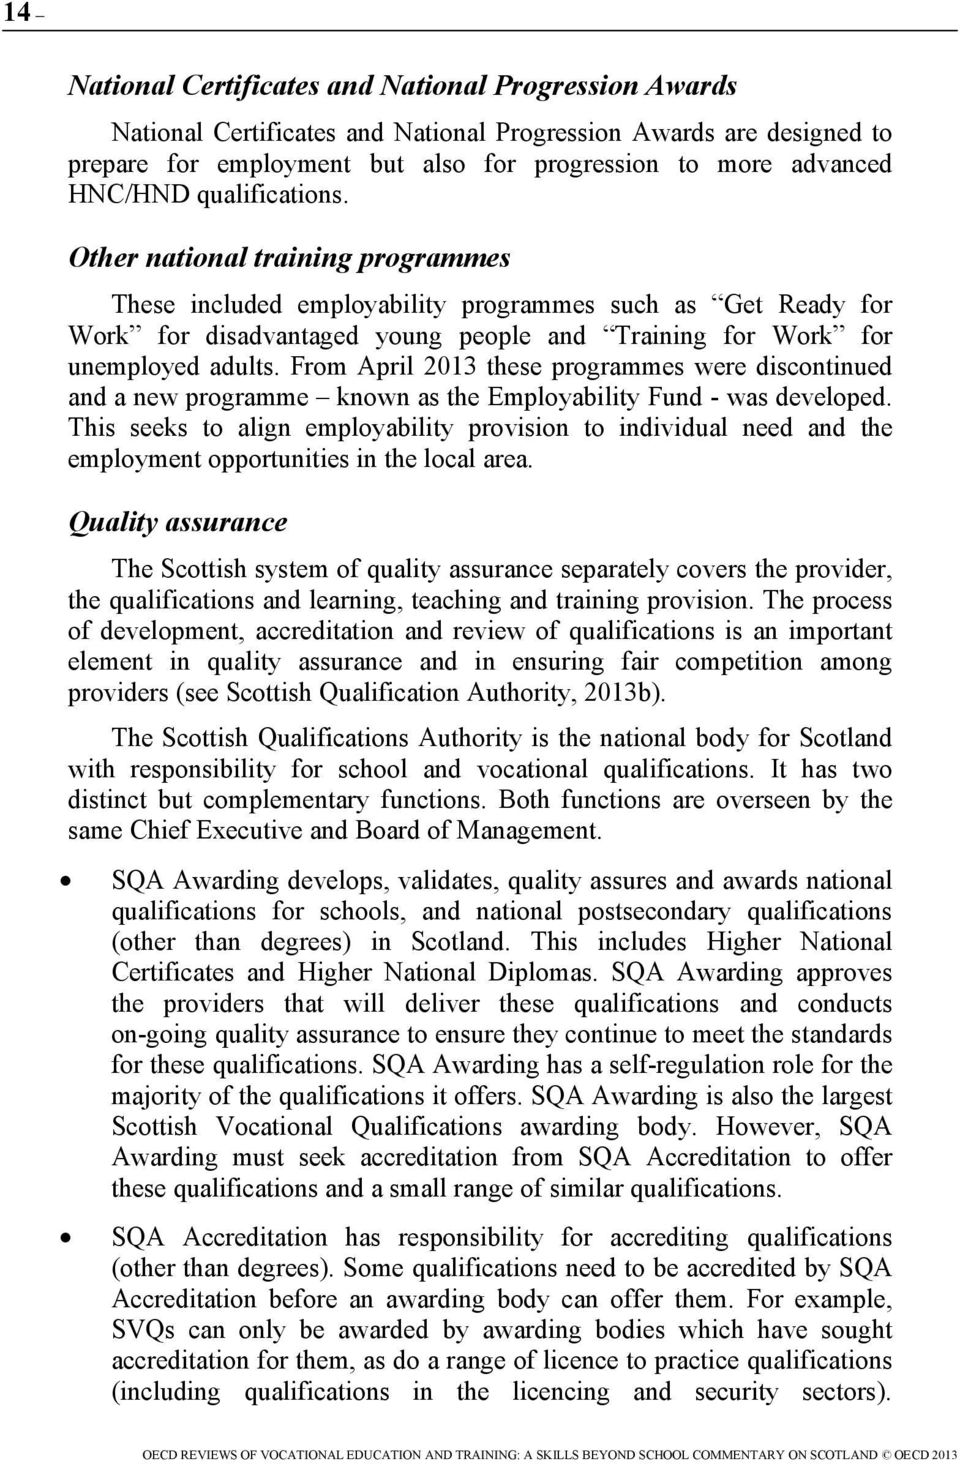 From April 2013 these programmes were discontinued and a new programme known as the Employability Fund - was developed.